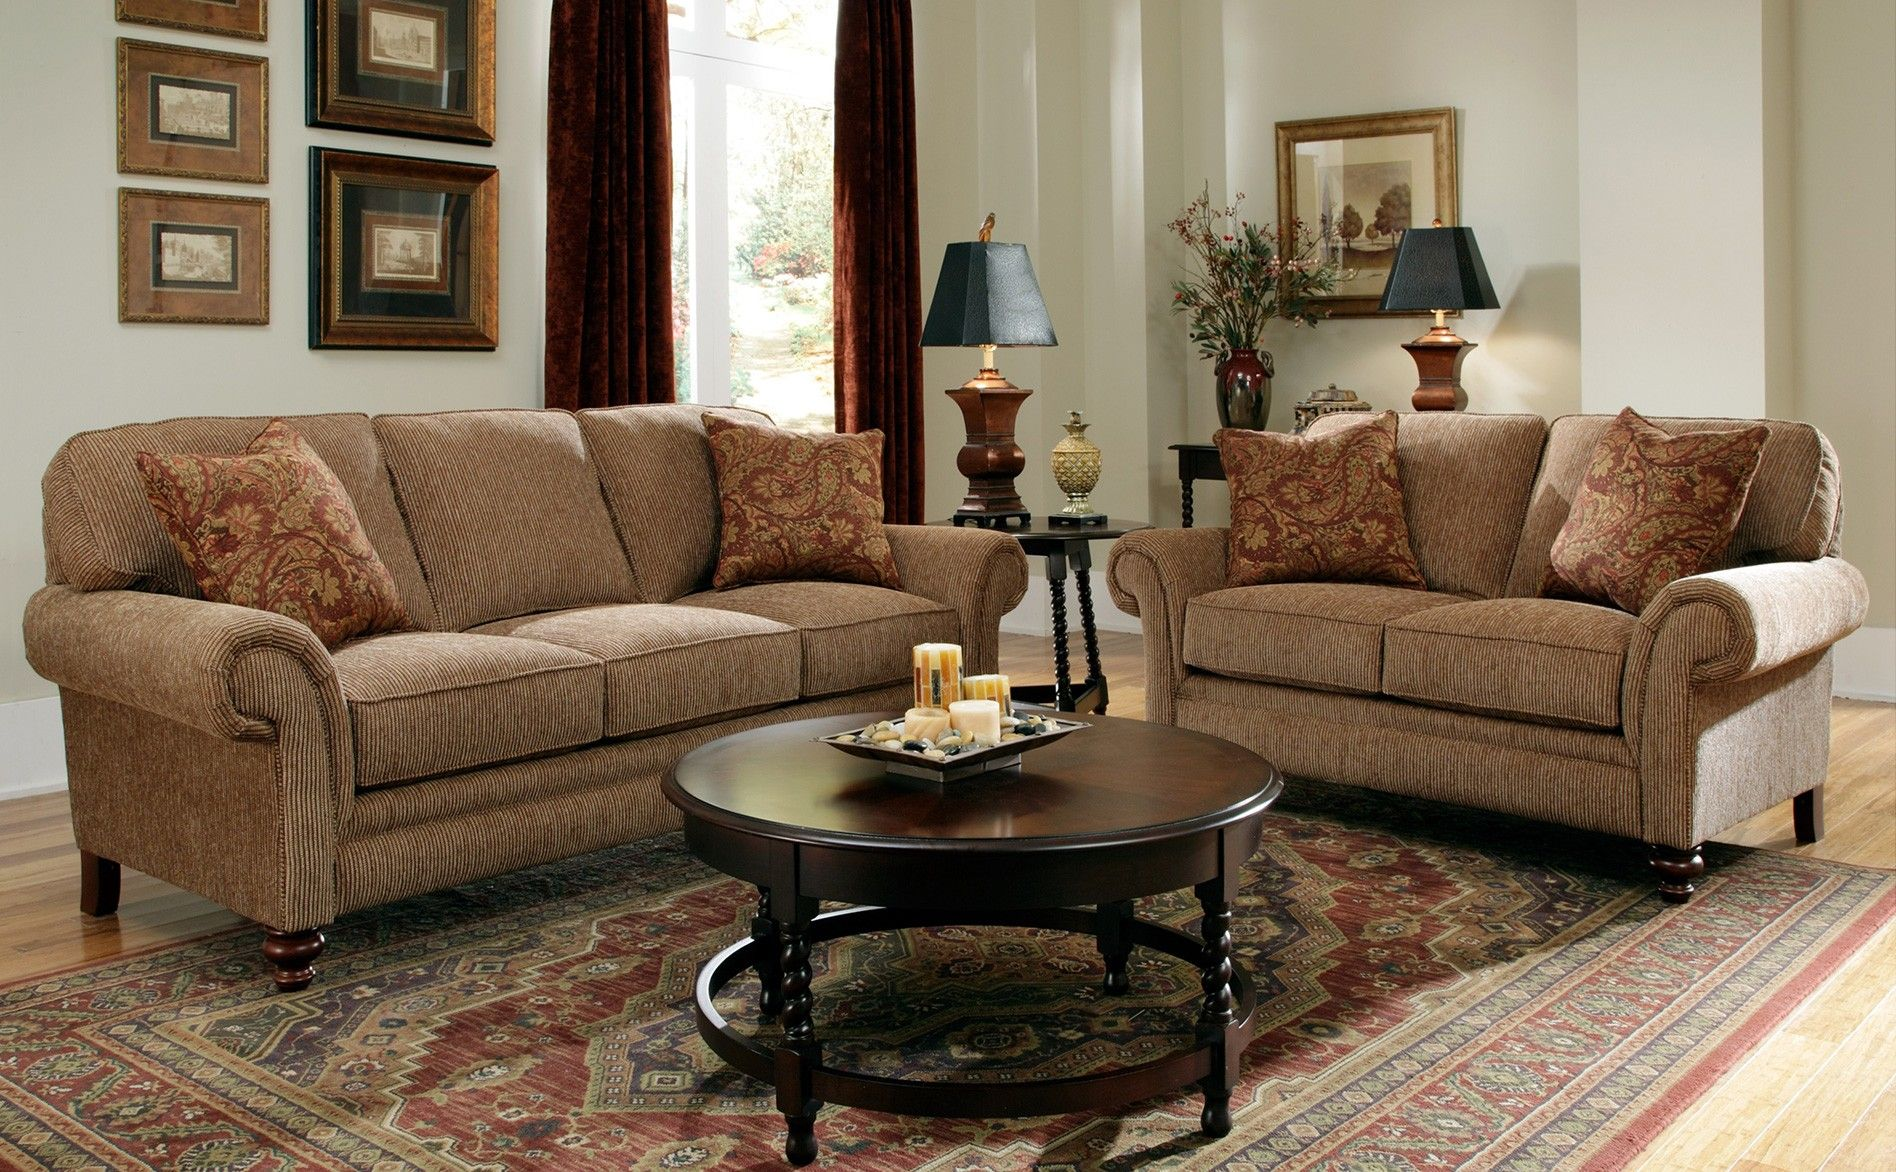 Stupendous Broyhill Sofa Sofa Set Broyhill Furniture Sofa Dailytribune Chair Design For Home Dailytribuneorg